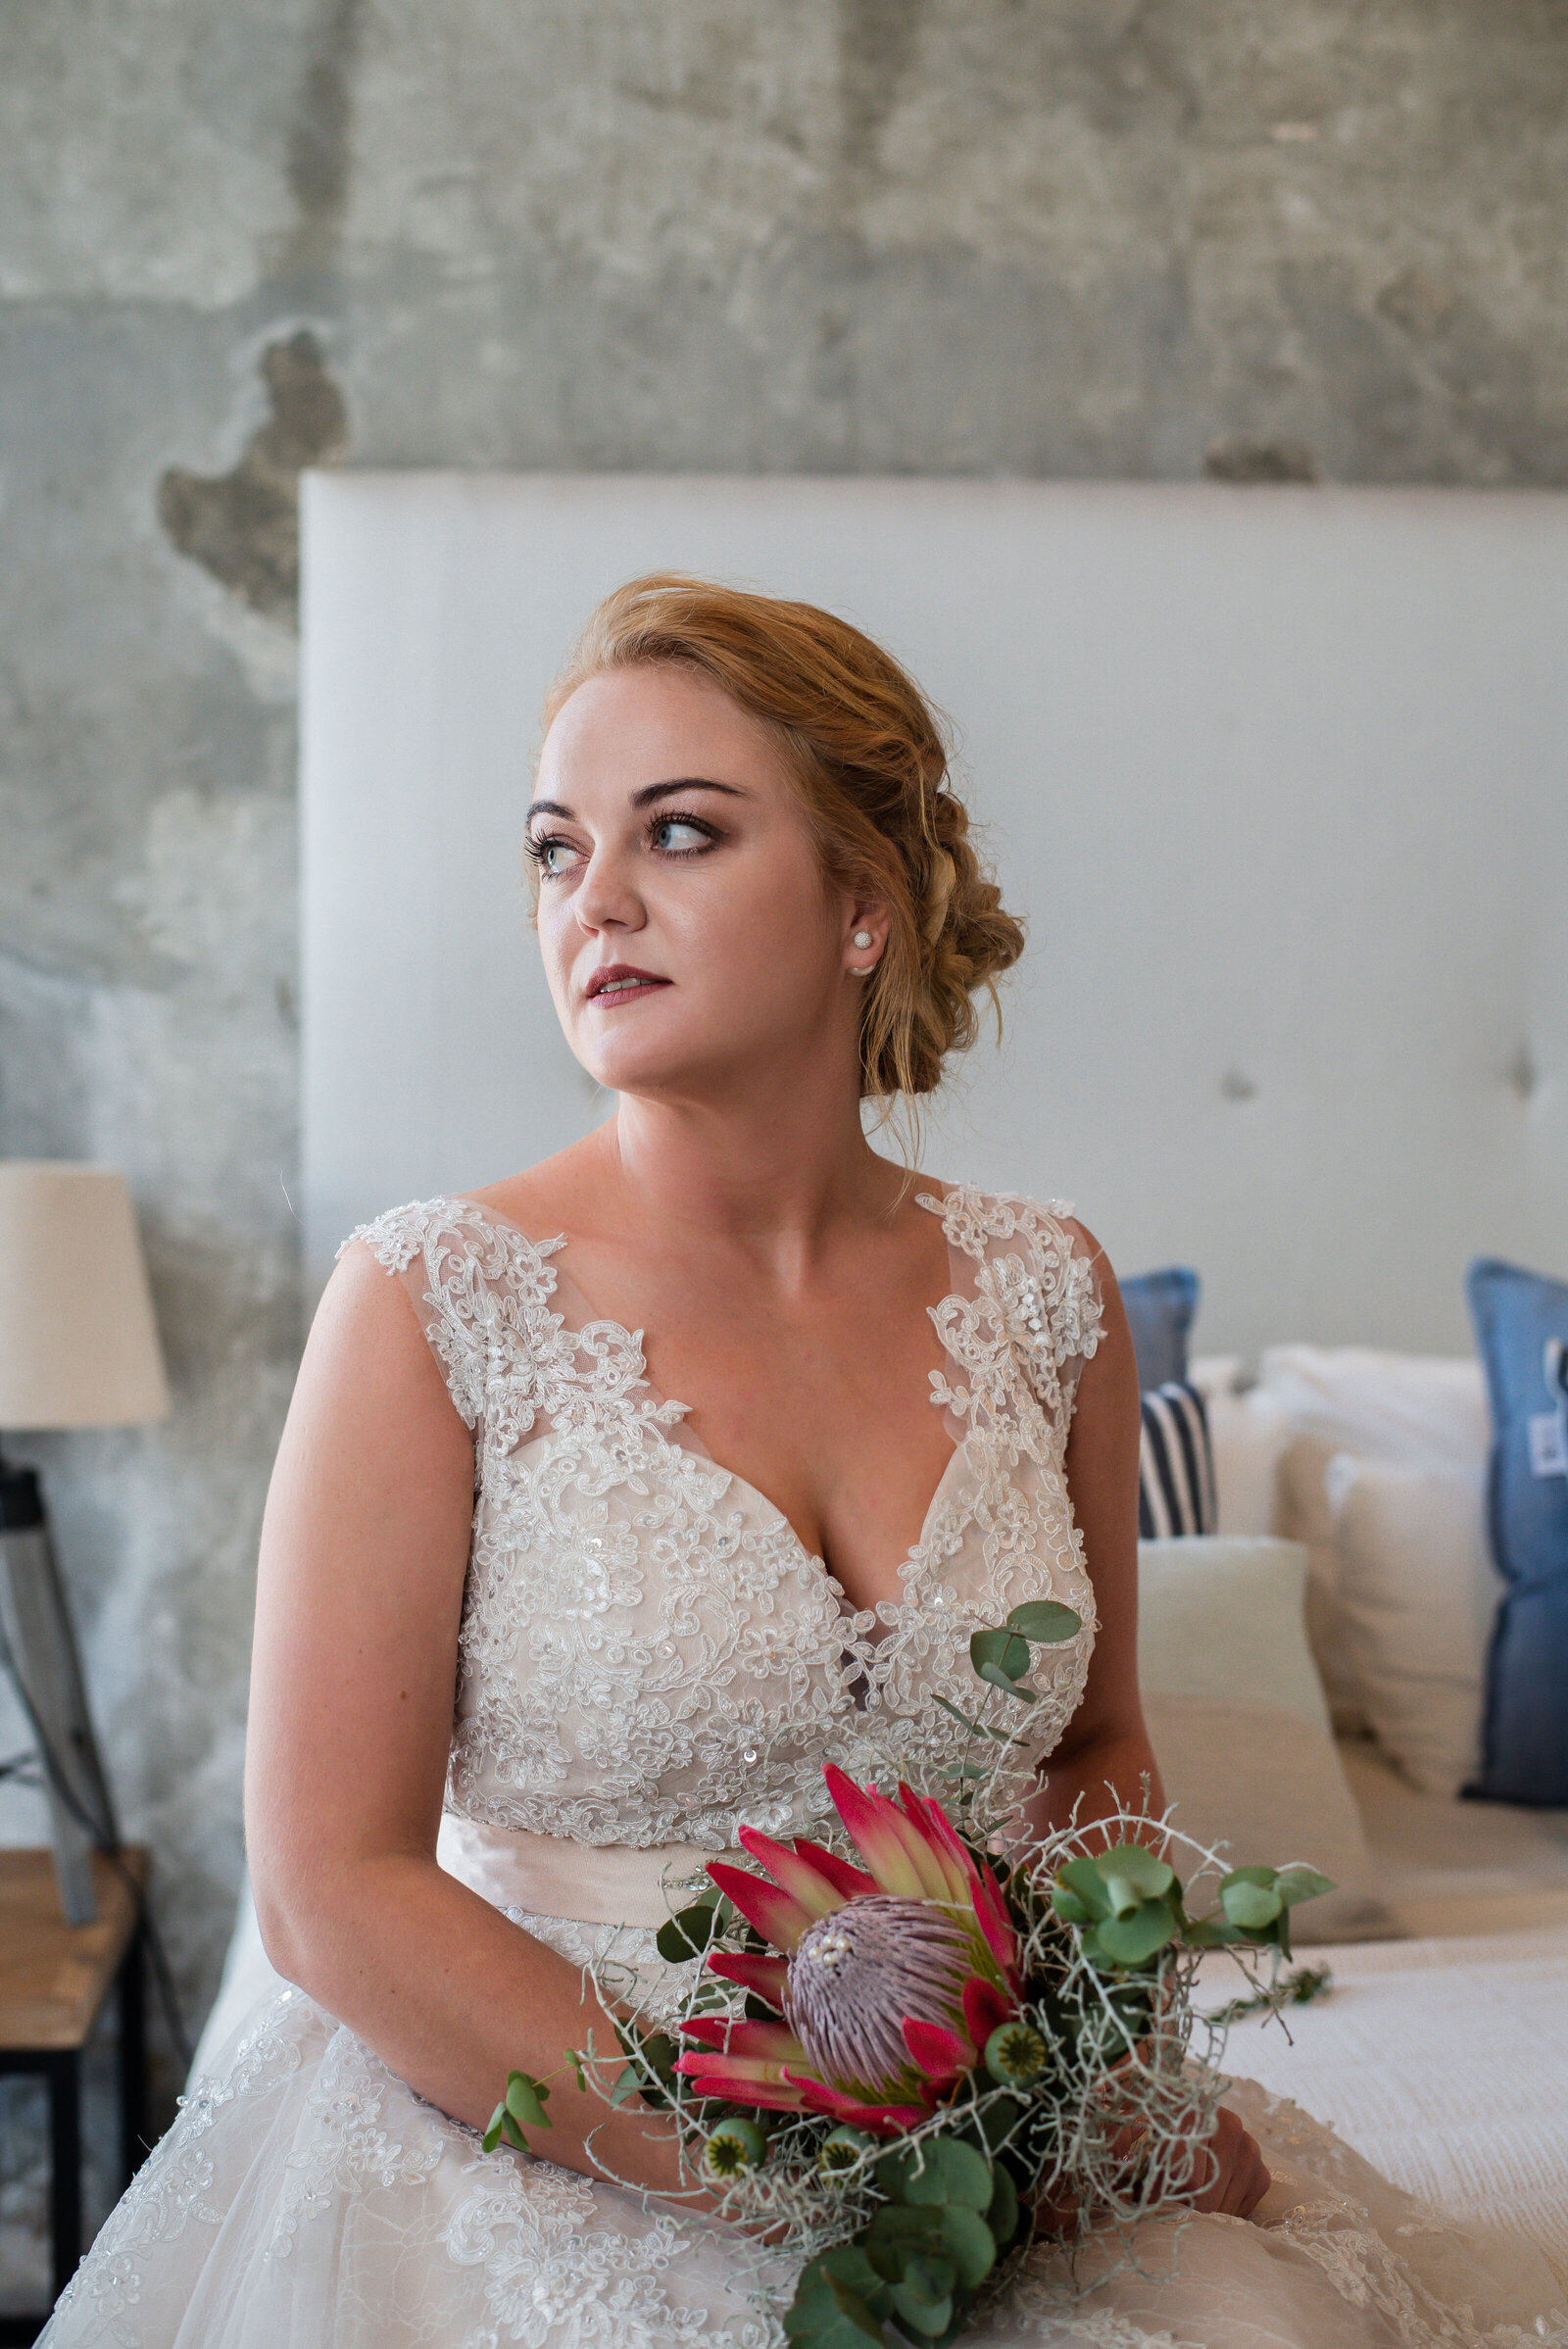 Wedding Photographer + Cape Town venue +Elri Photography+ Weddingdress (16)